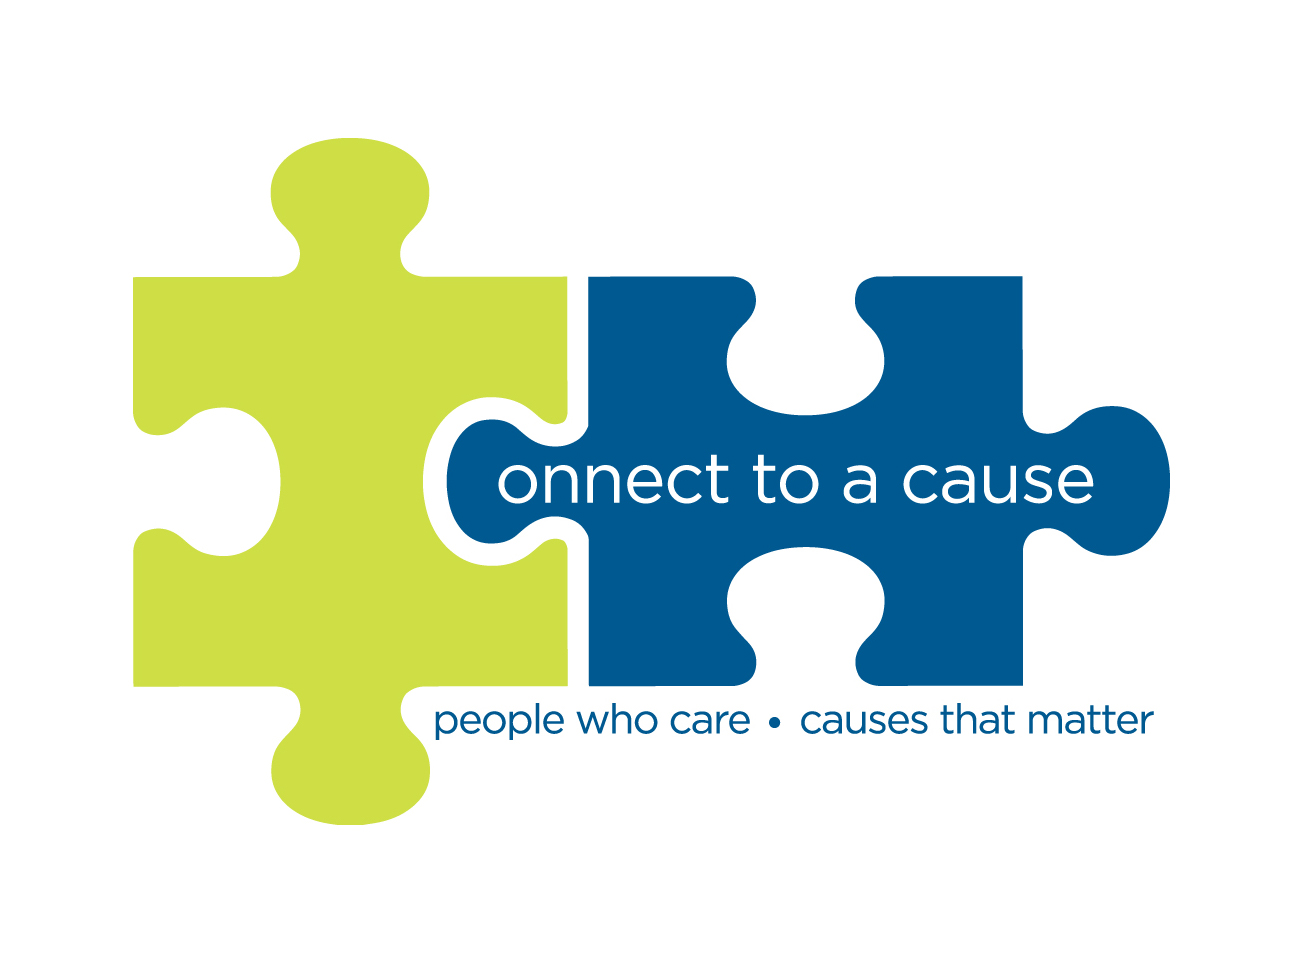 Connect to a cause